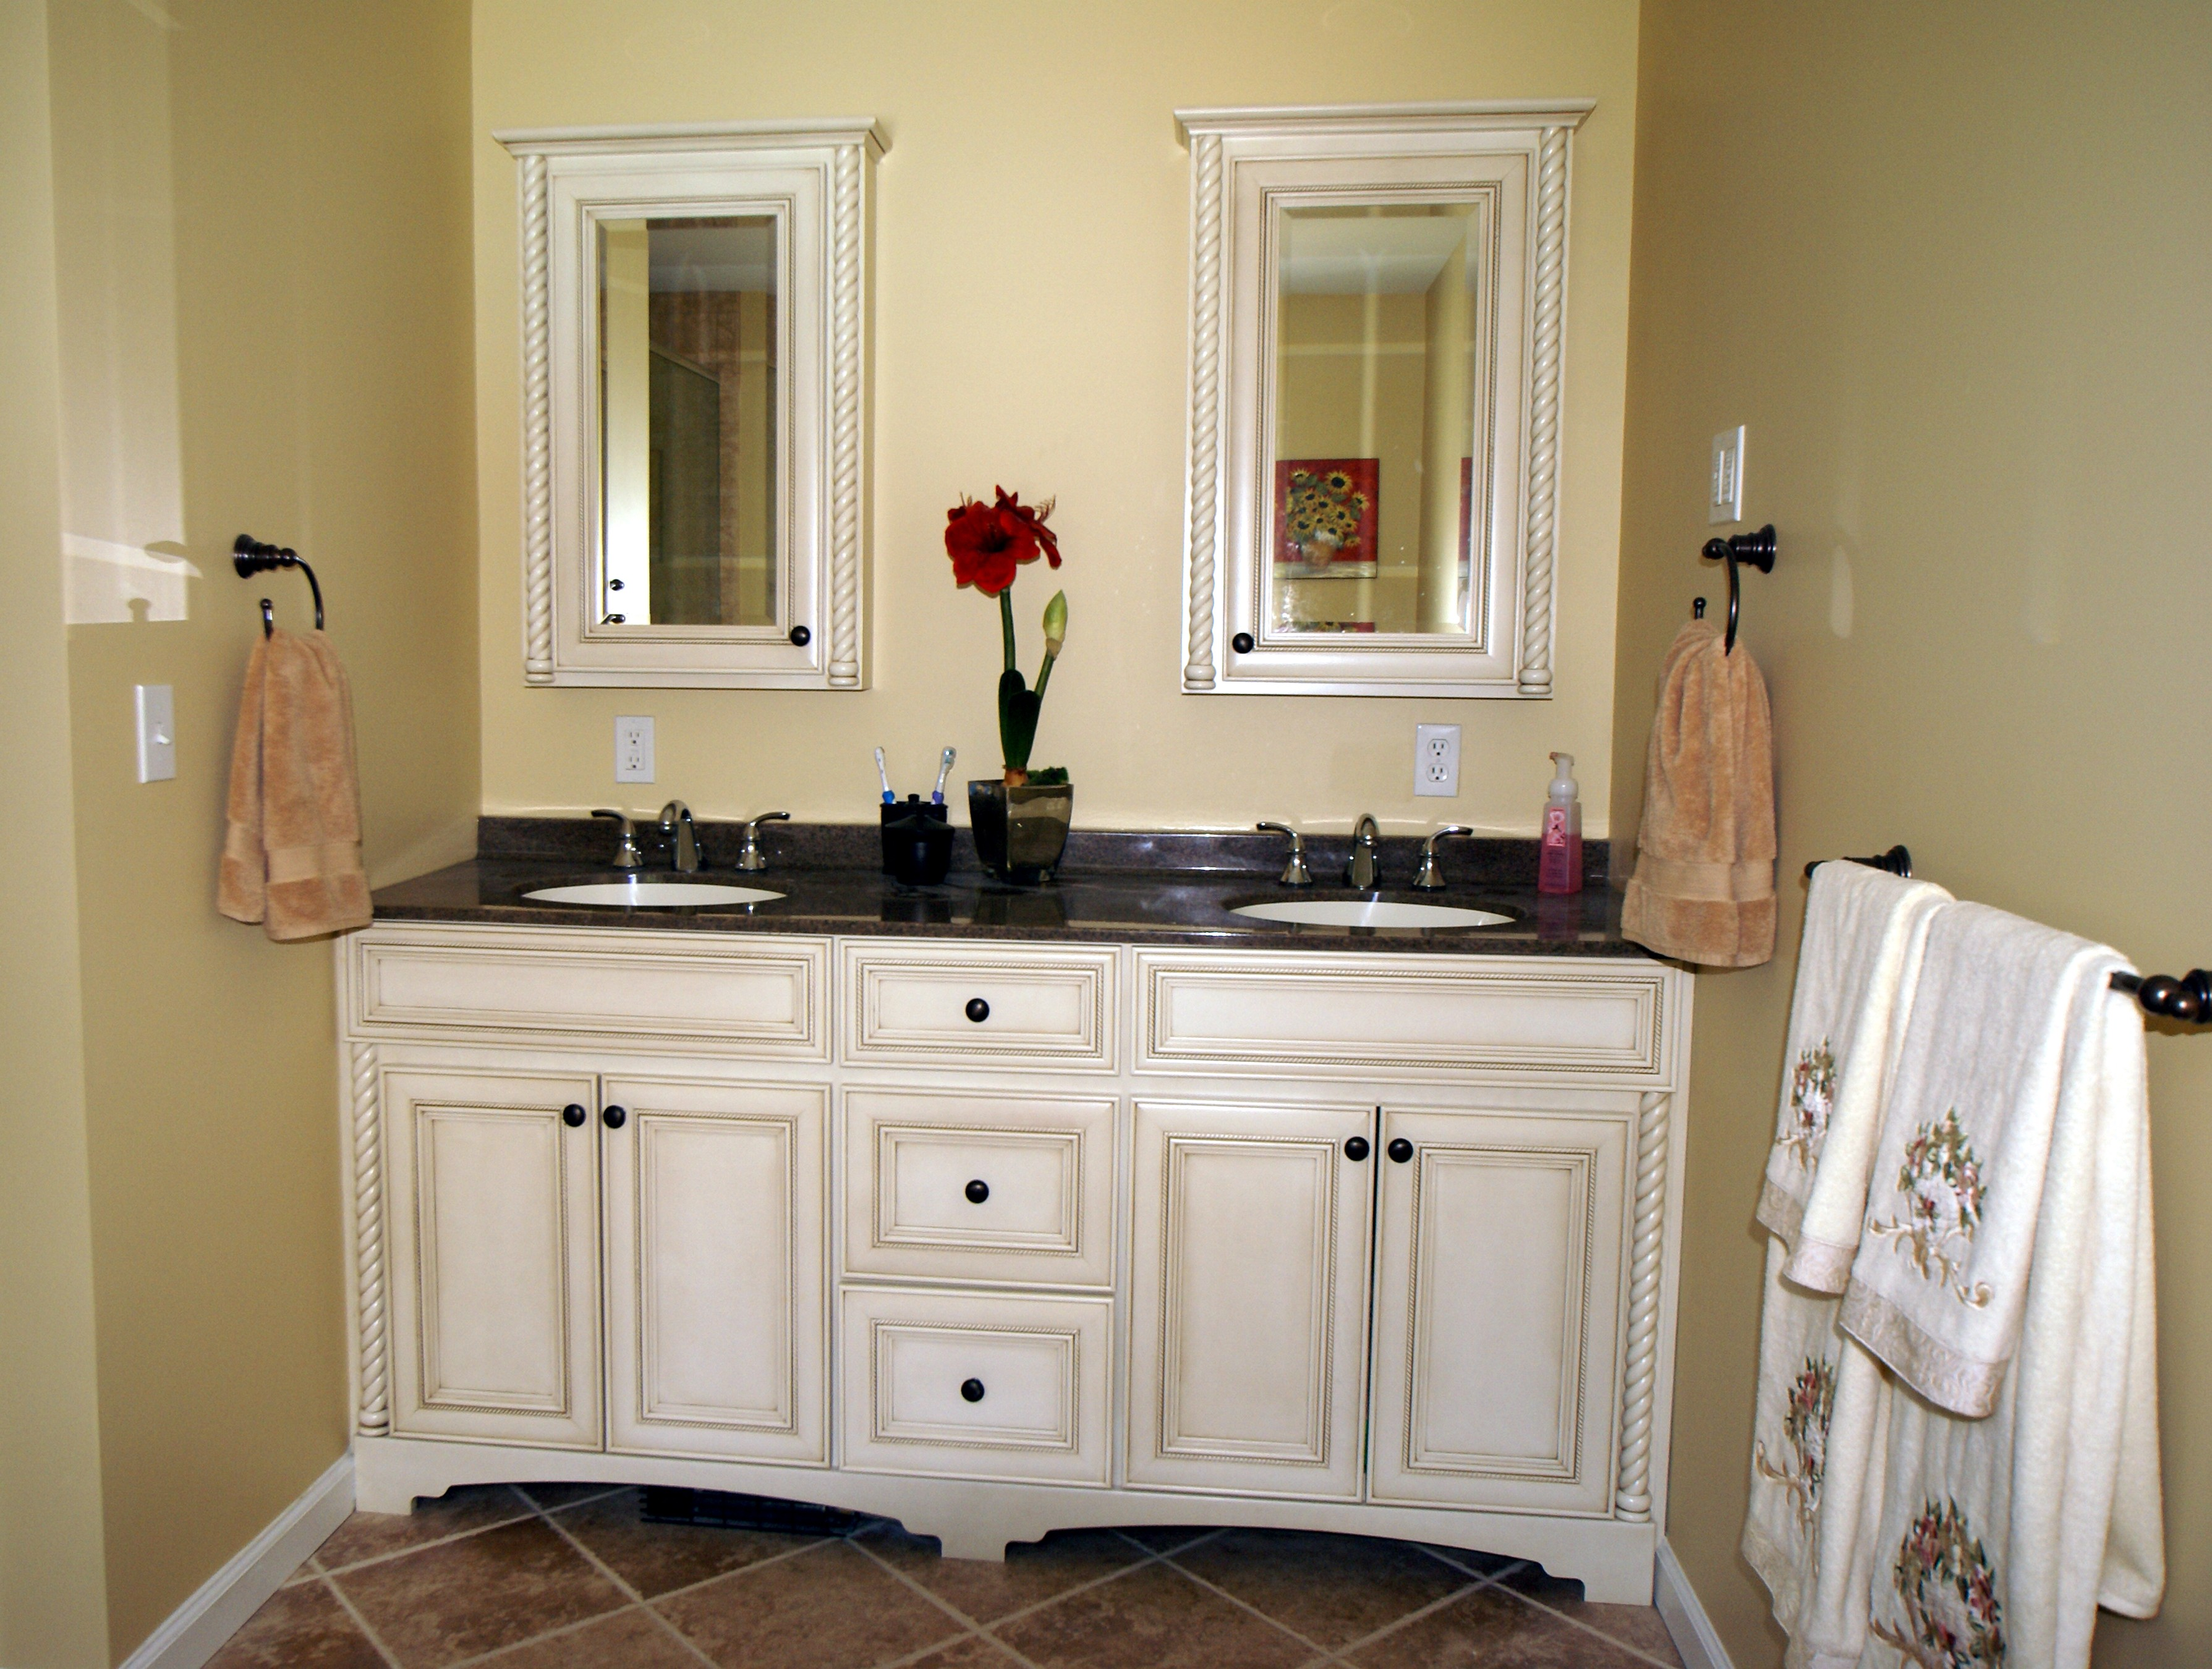 monmouth county bathroom remodel 2 - Bathroom Renovation Designs